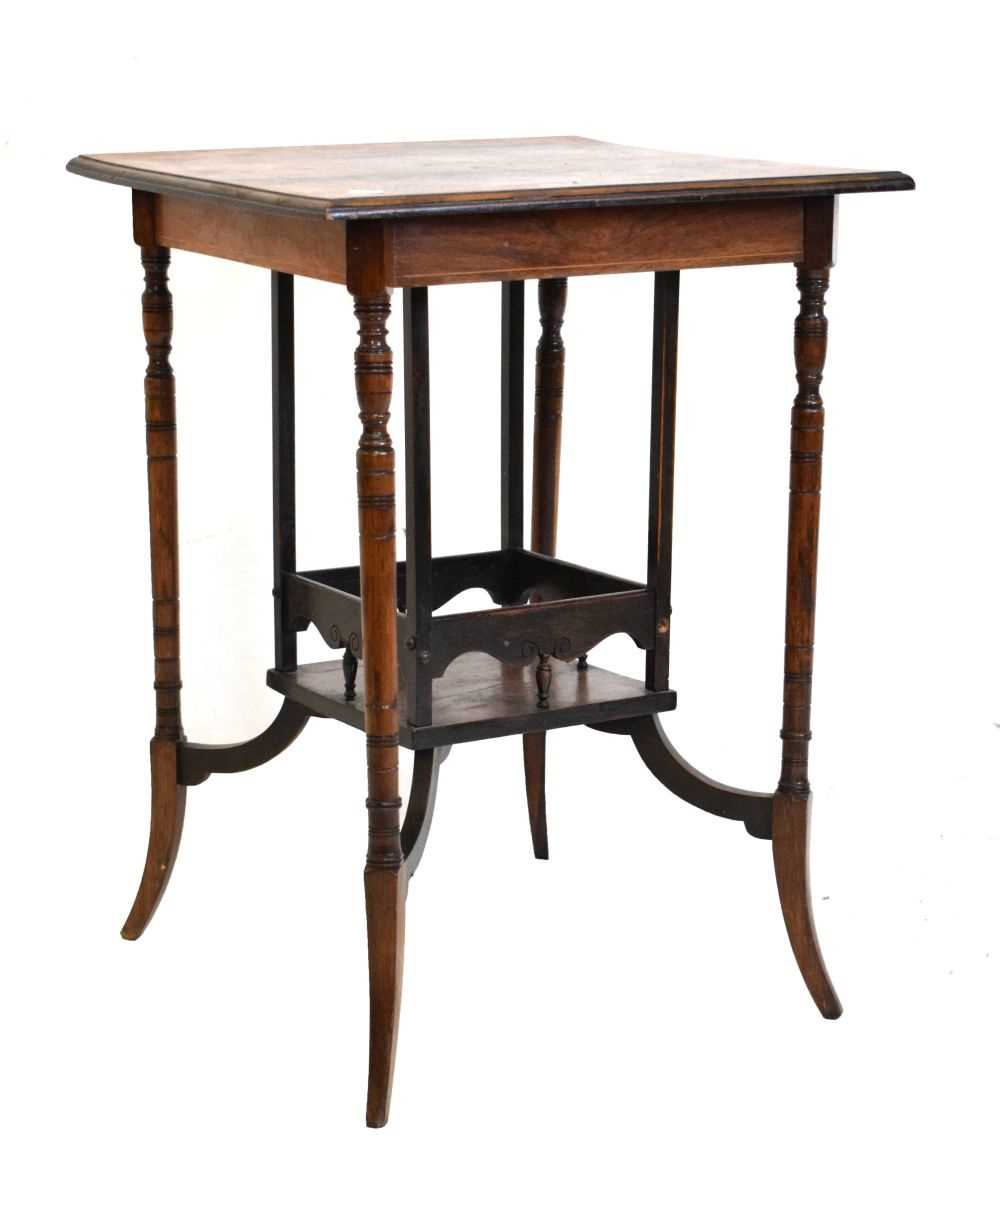 Inlaid rosewood occasional table circa 1900